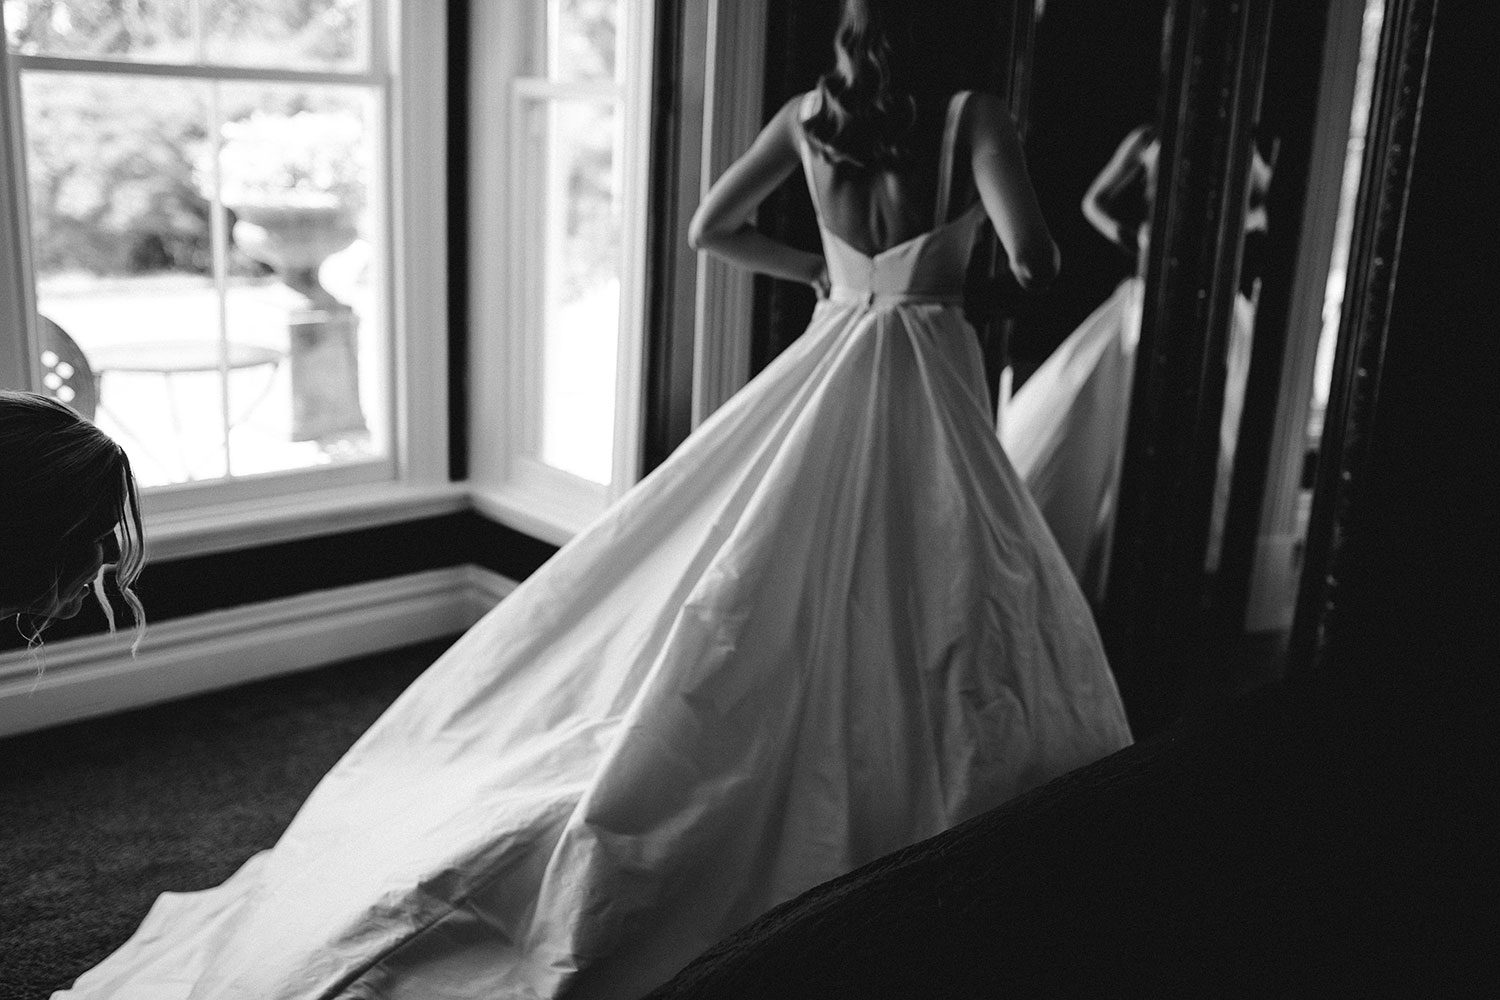 Bride wearing NZ Bespoke Bridal Gown by Vinka Designs, made of silk faile with cowl bodice and detachable overskirt - back view at mirror